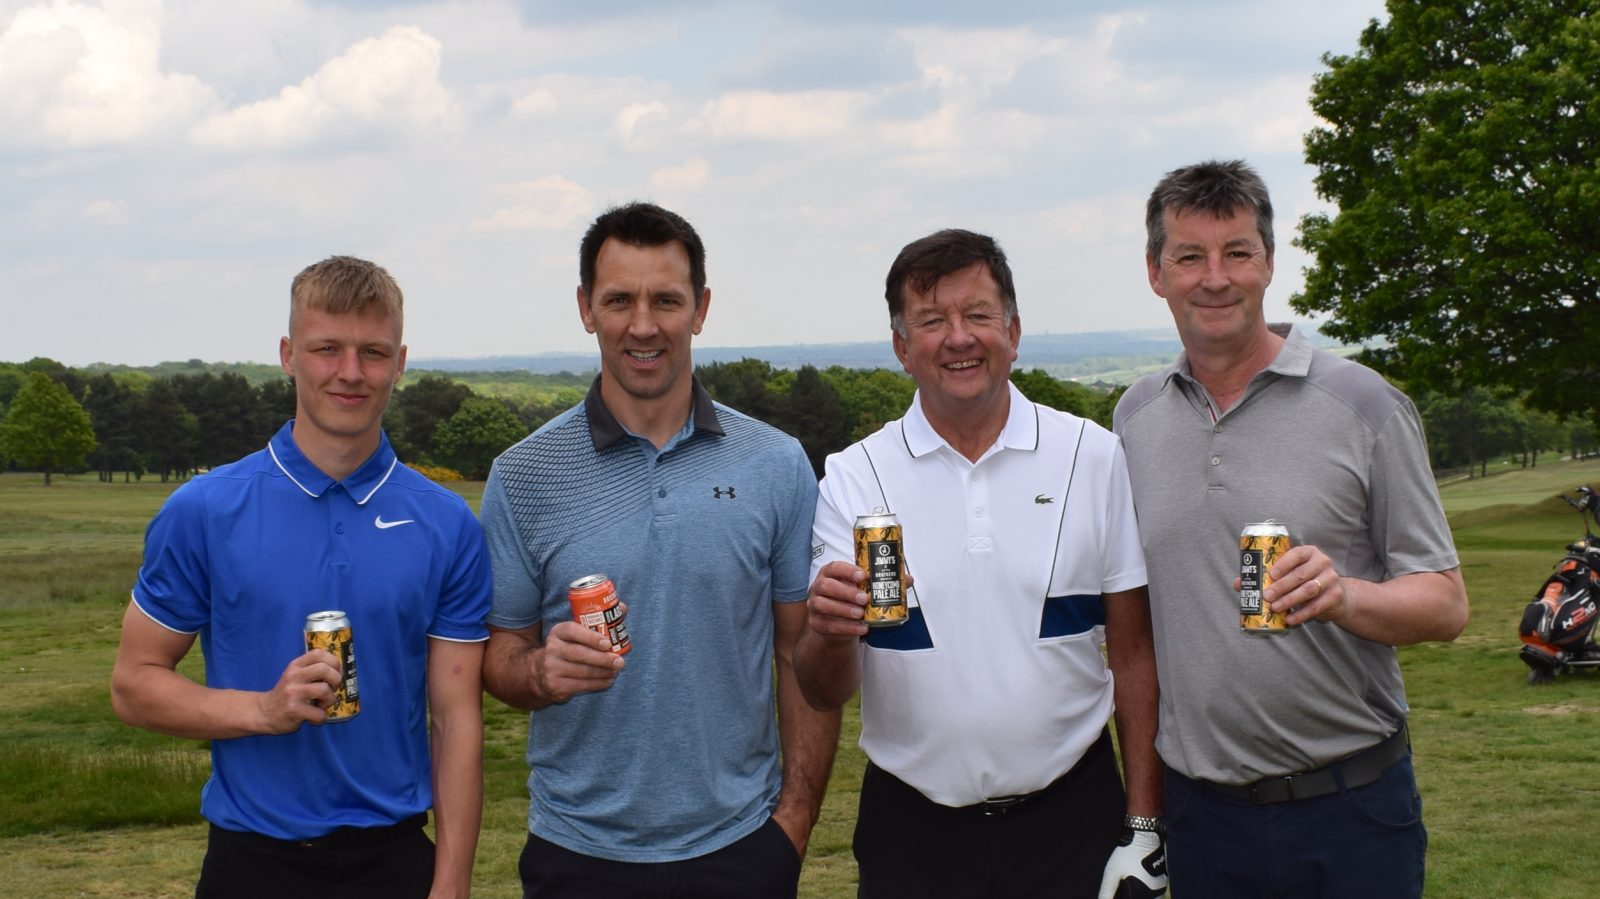 Scully stars at our golf day with prize-winning display